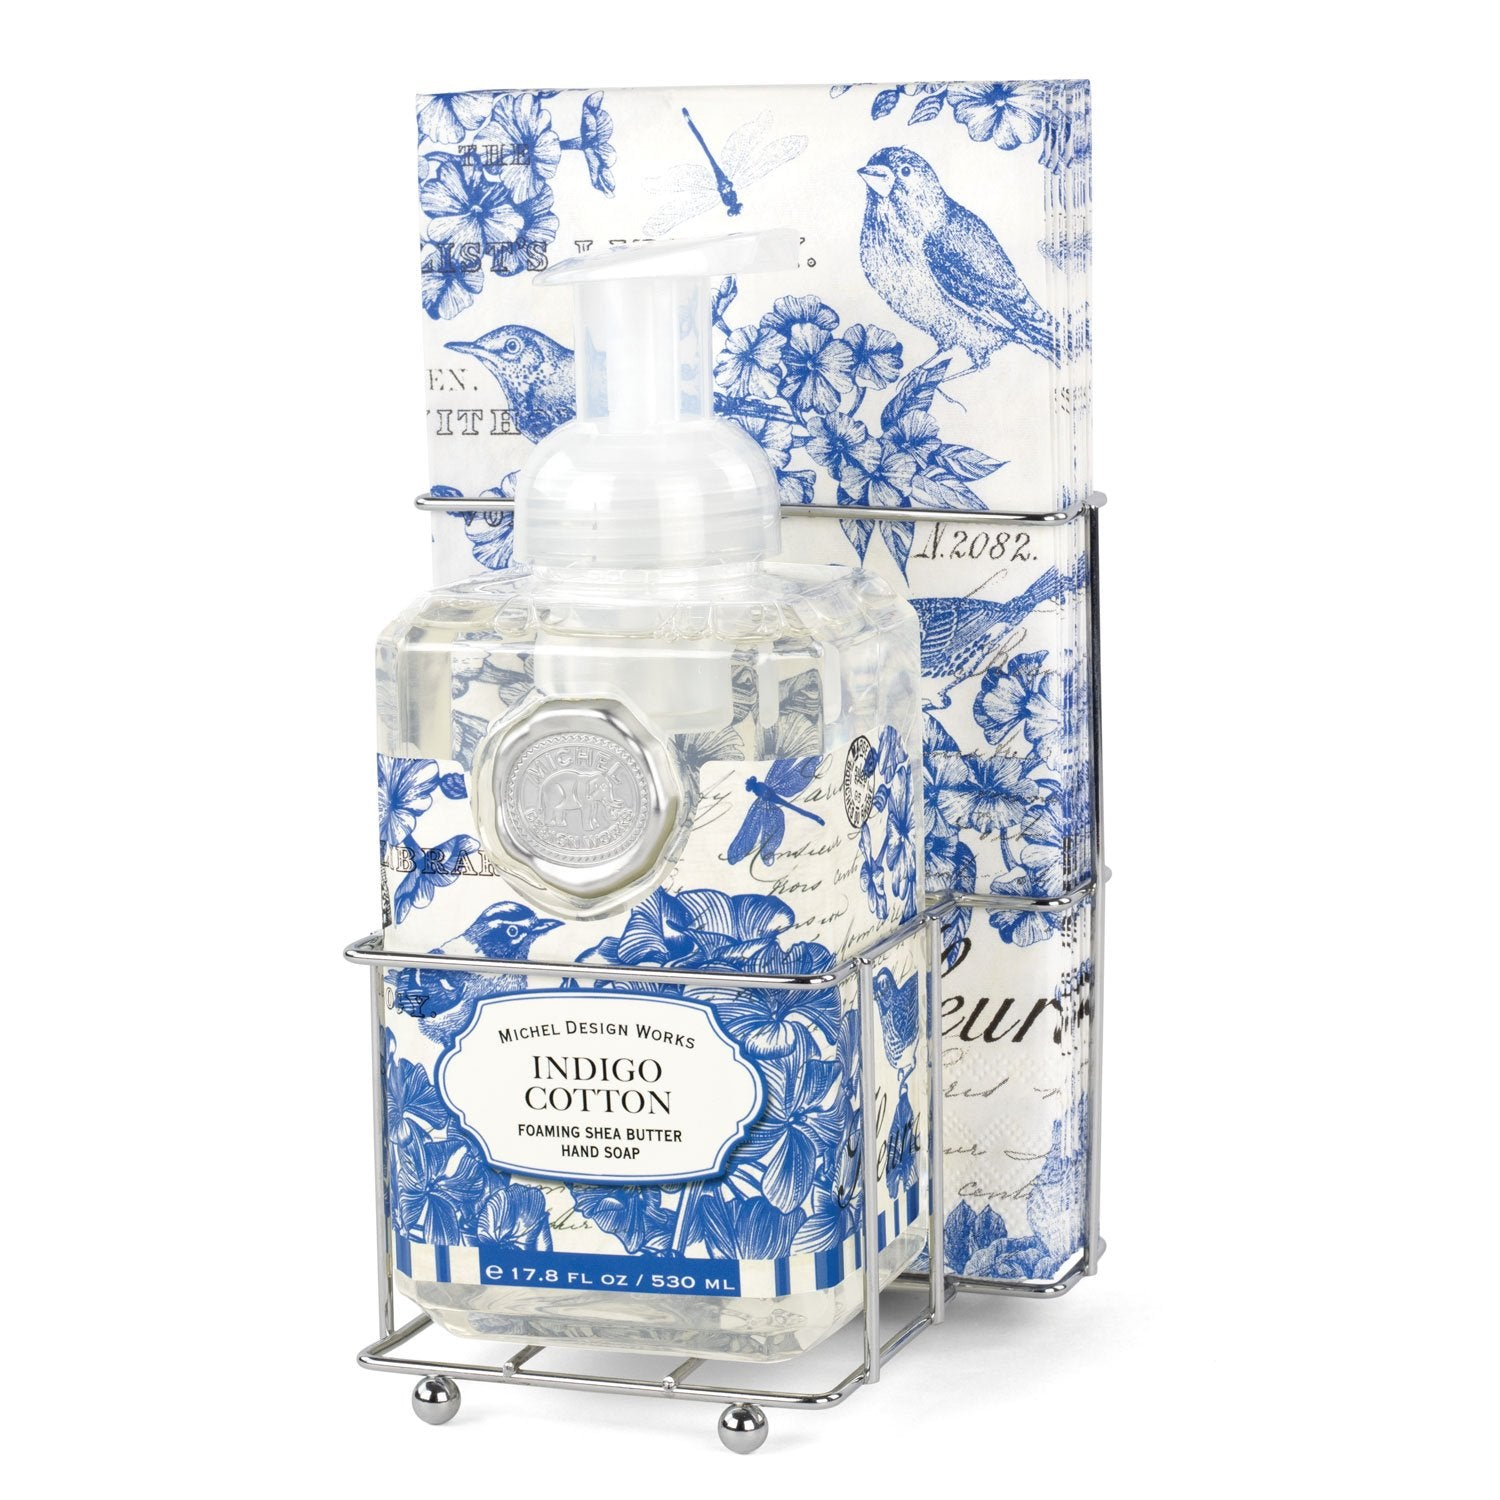 Indigo Cotton Foaming Hand Soap Napkin Set